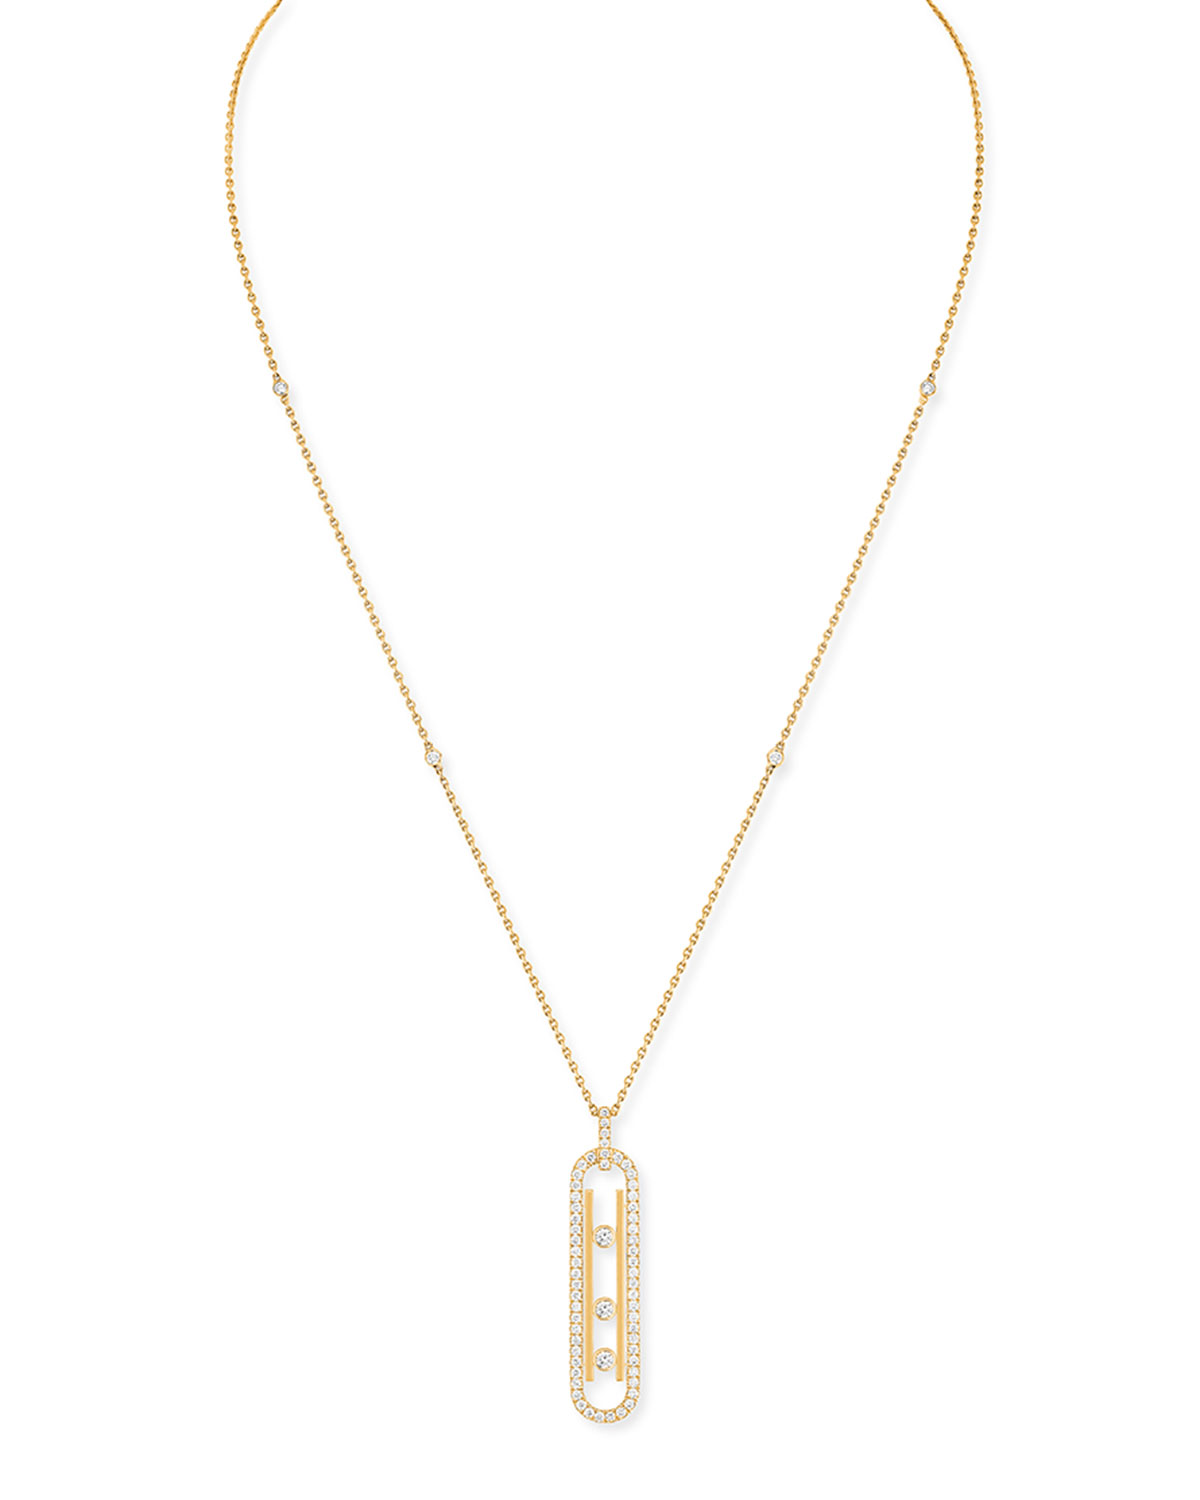 Move Small Pave Necklace with Diamonds in Yellow Gold